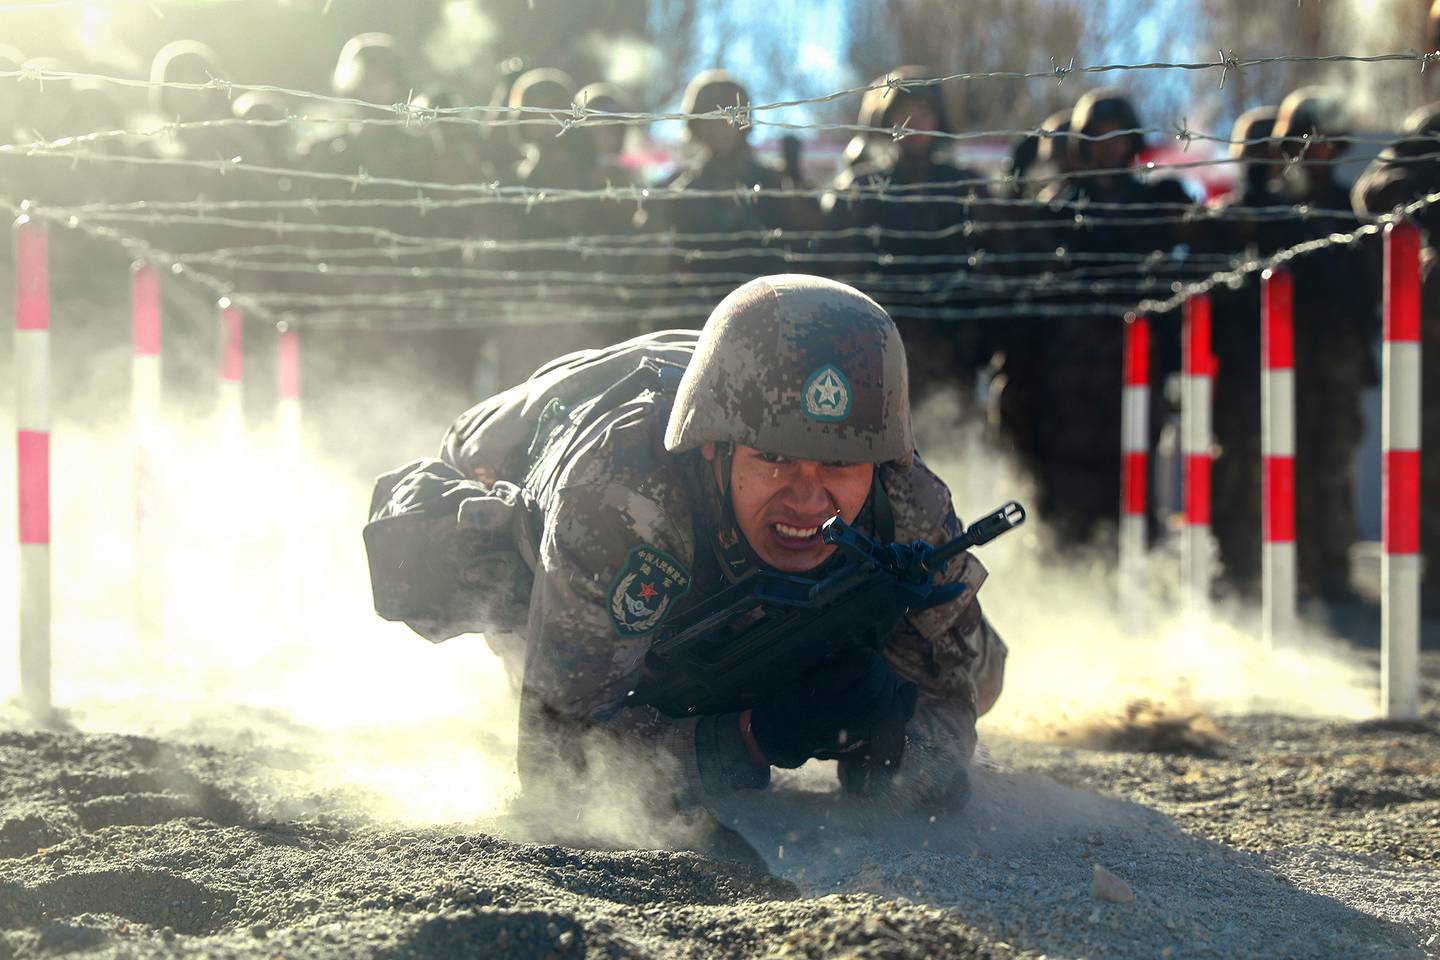 A Chinese soldier low-crawls in the dirt under barbed wire during training.